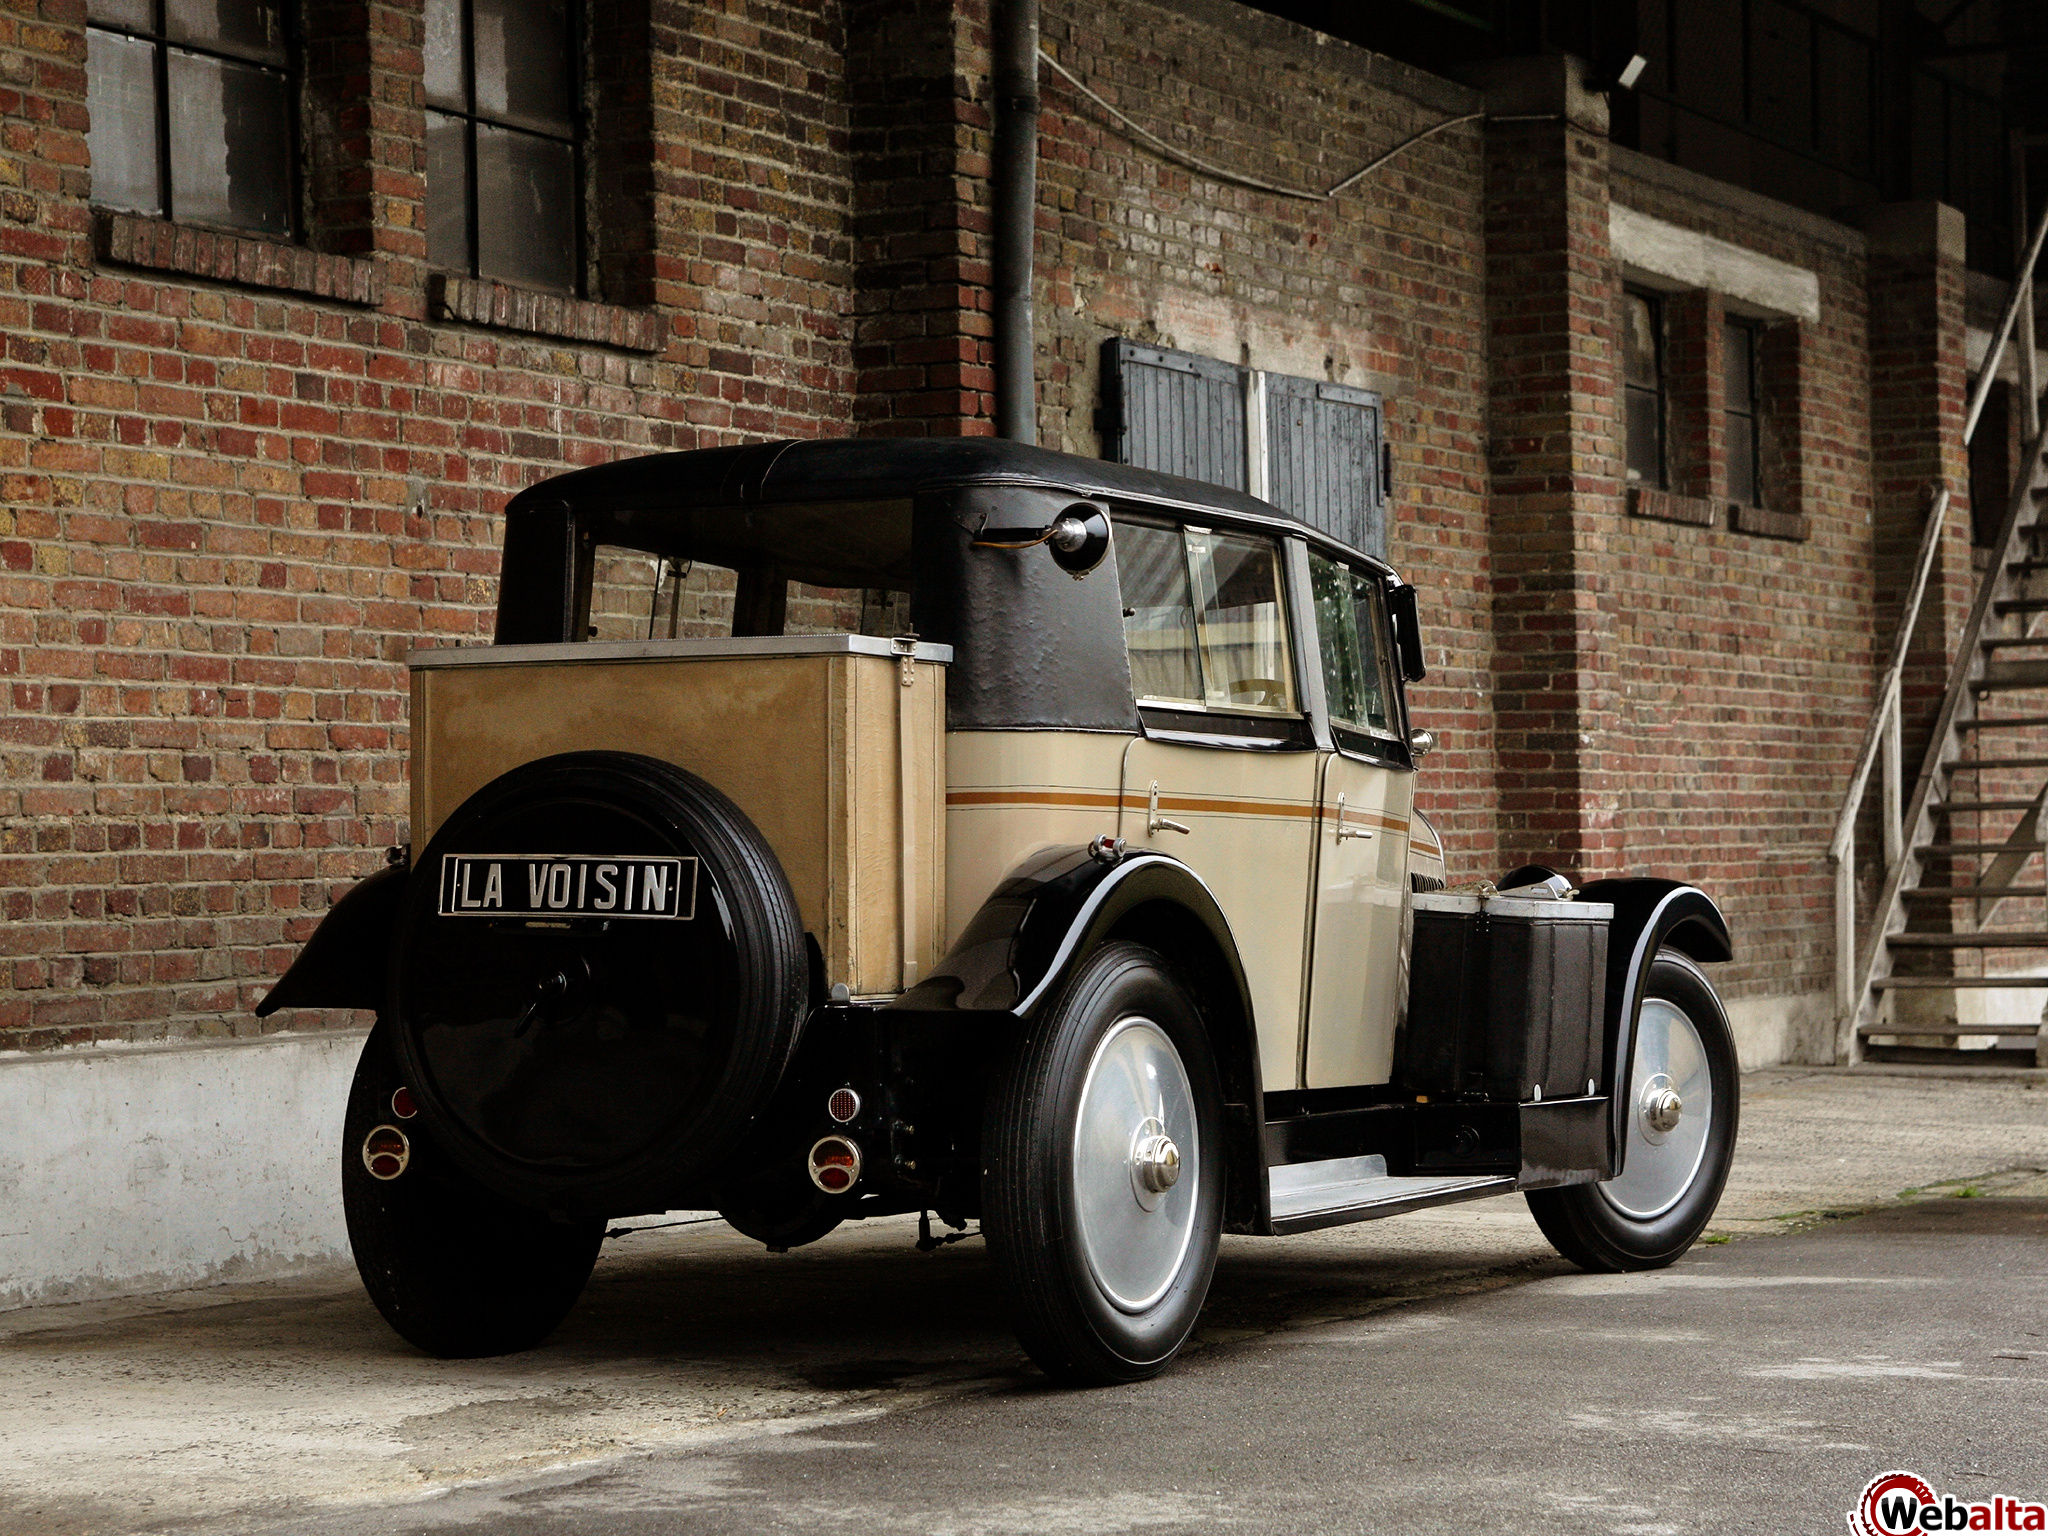 Voisin c1 photo - 3